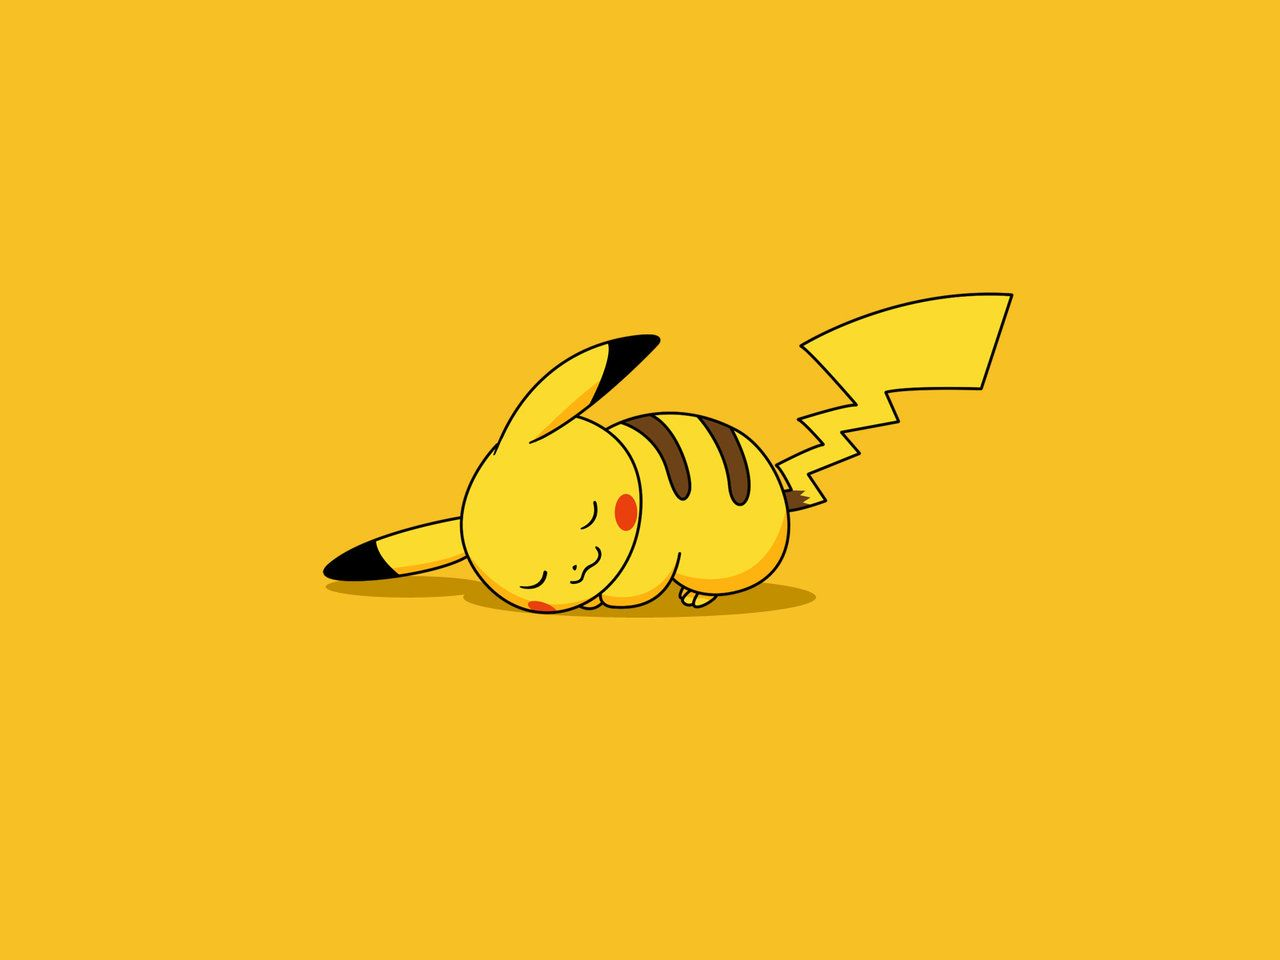 pikachu wallpaper yellow sleeping cute games jpg 1280 960